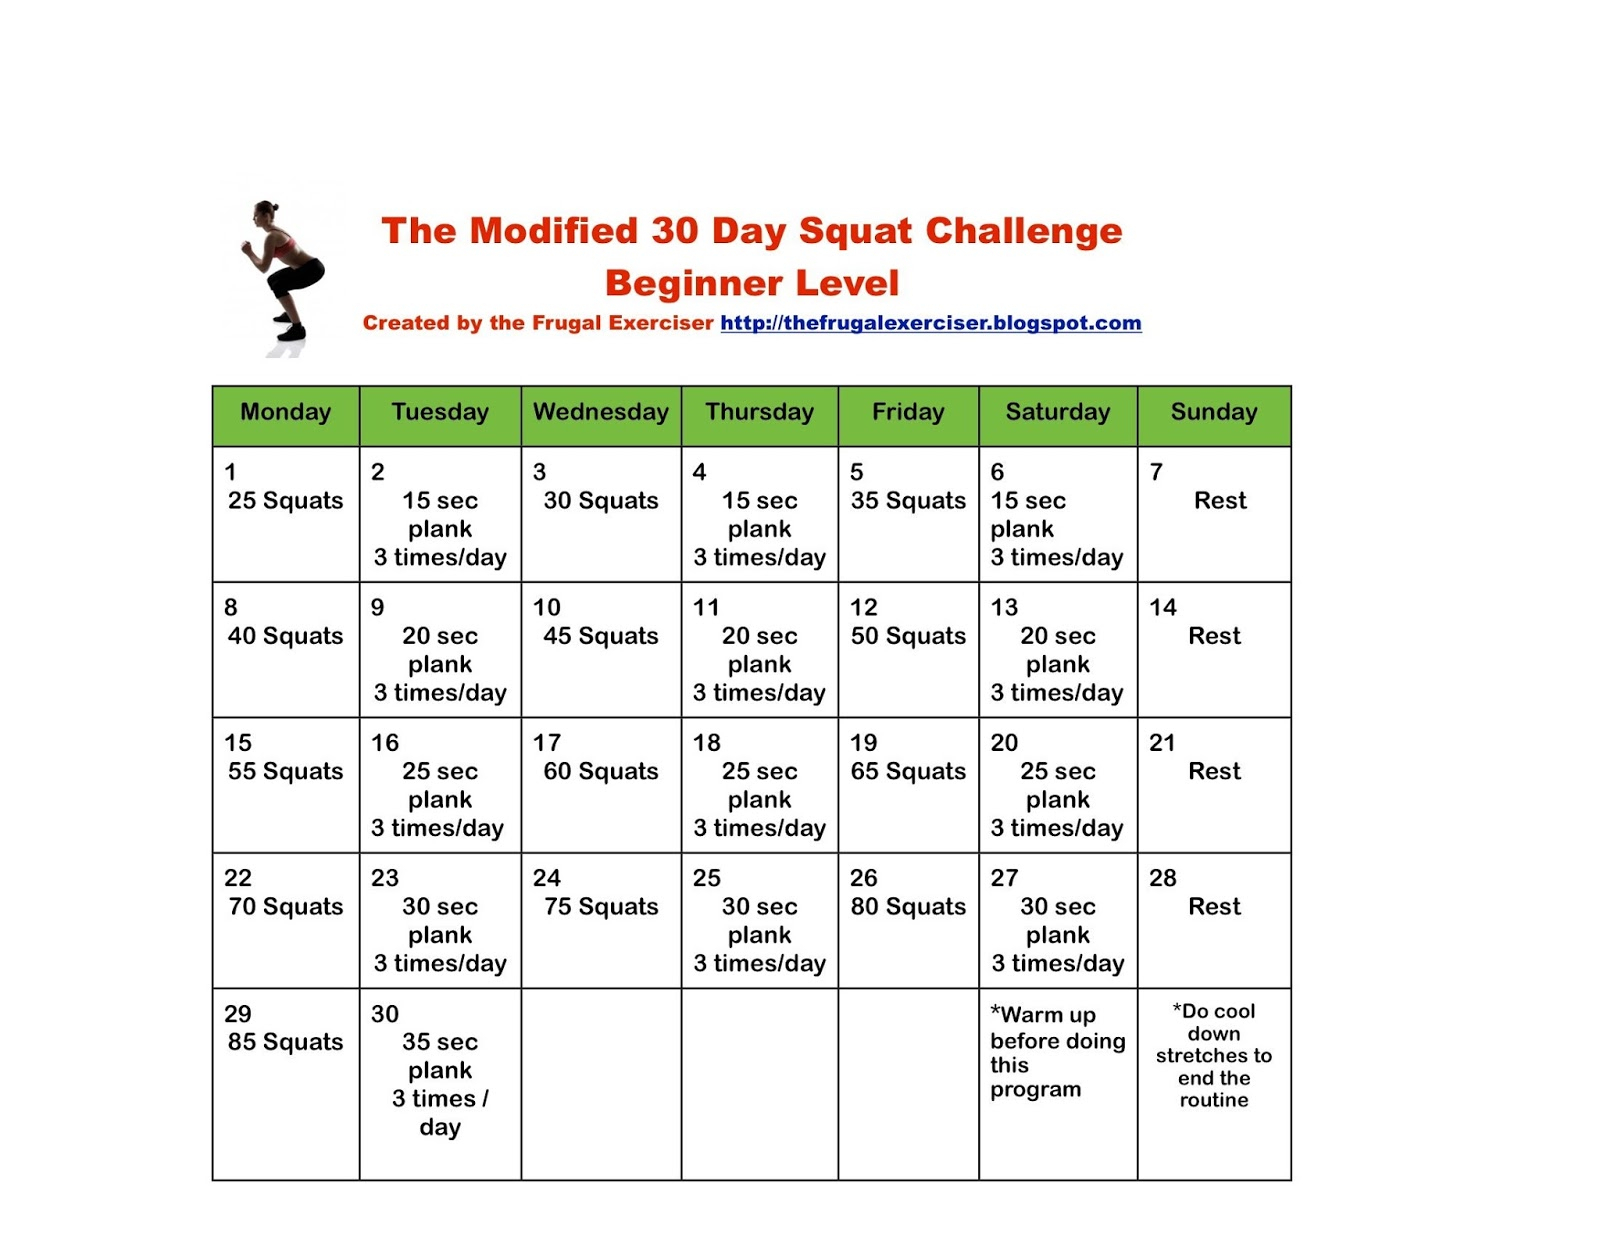 The Modified 30 Day Squat Challenge